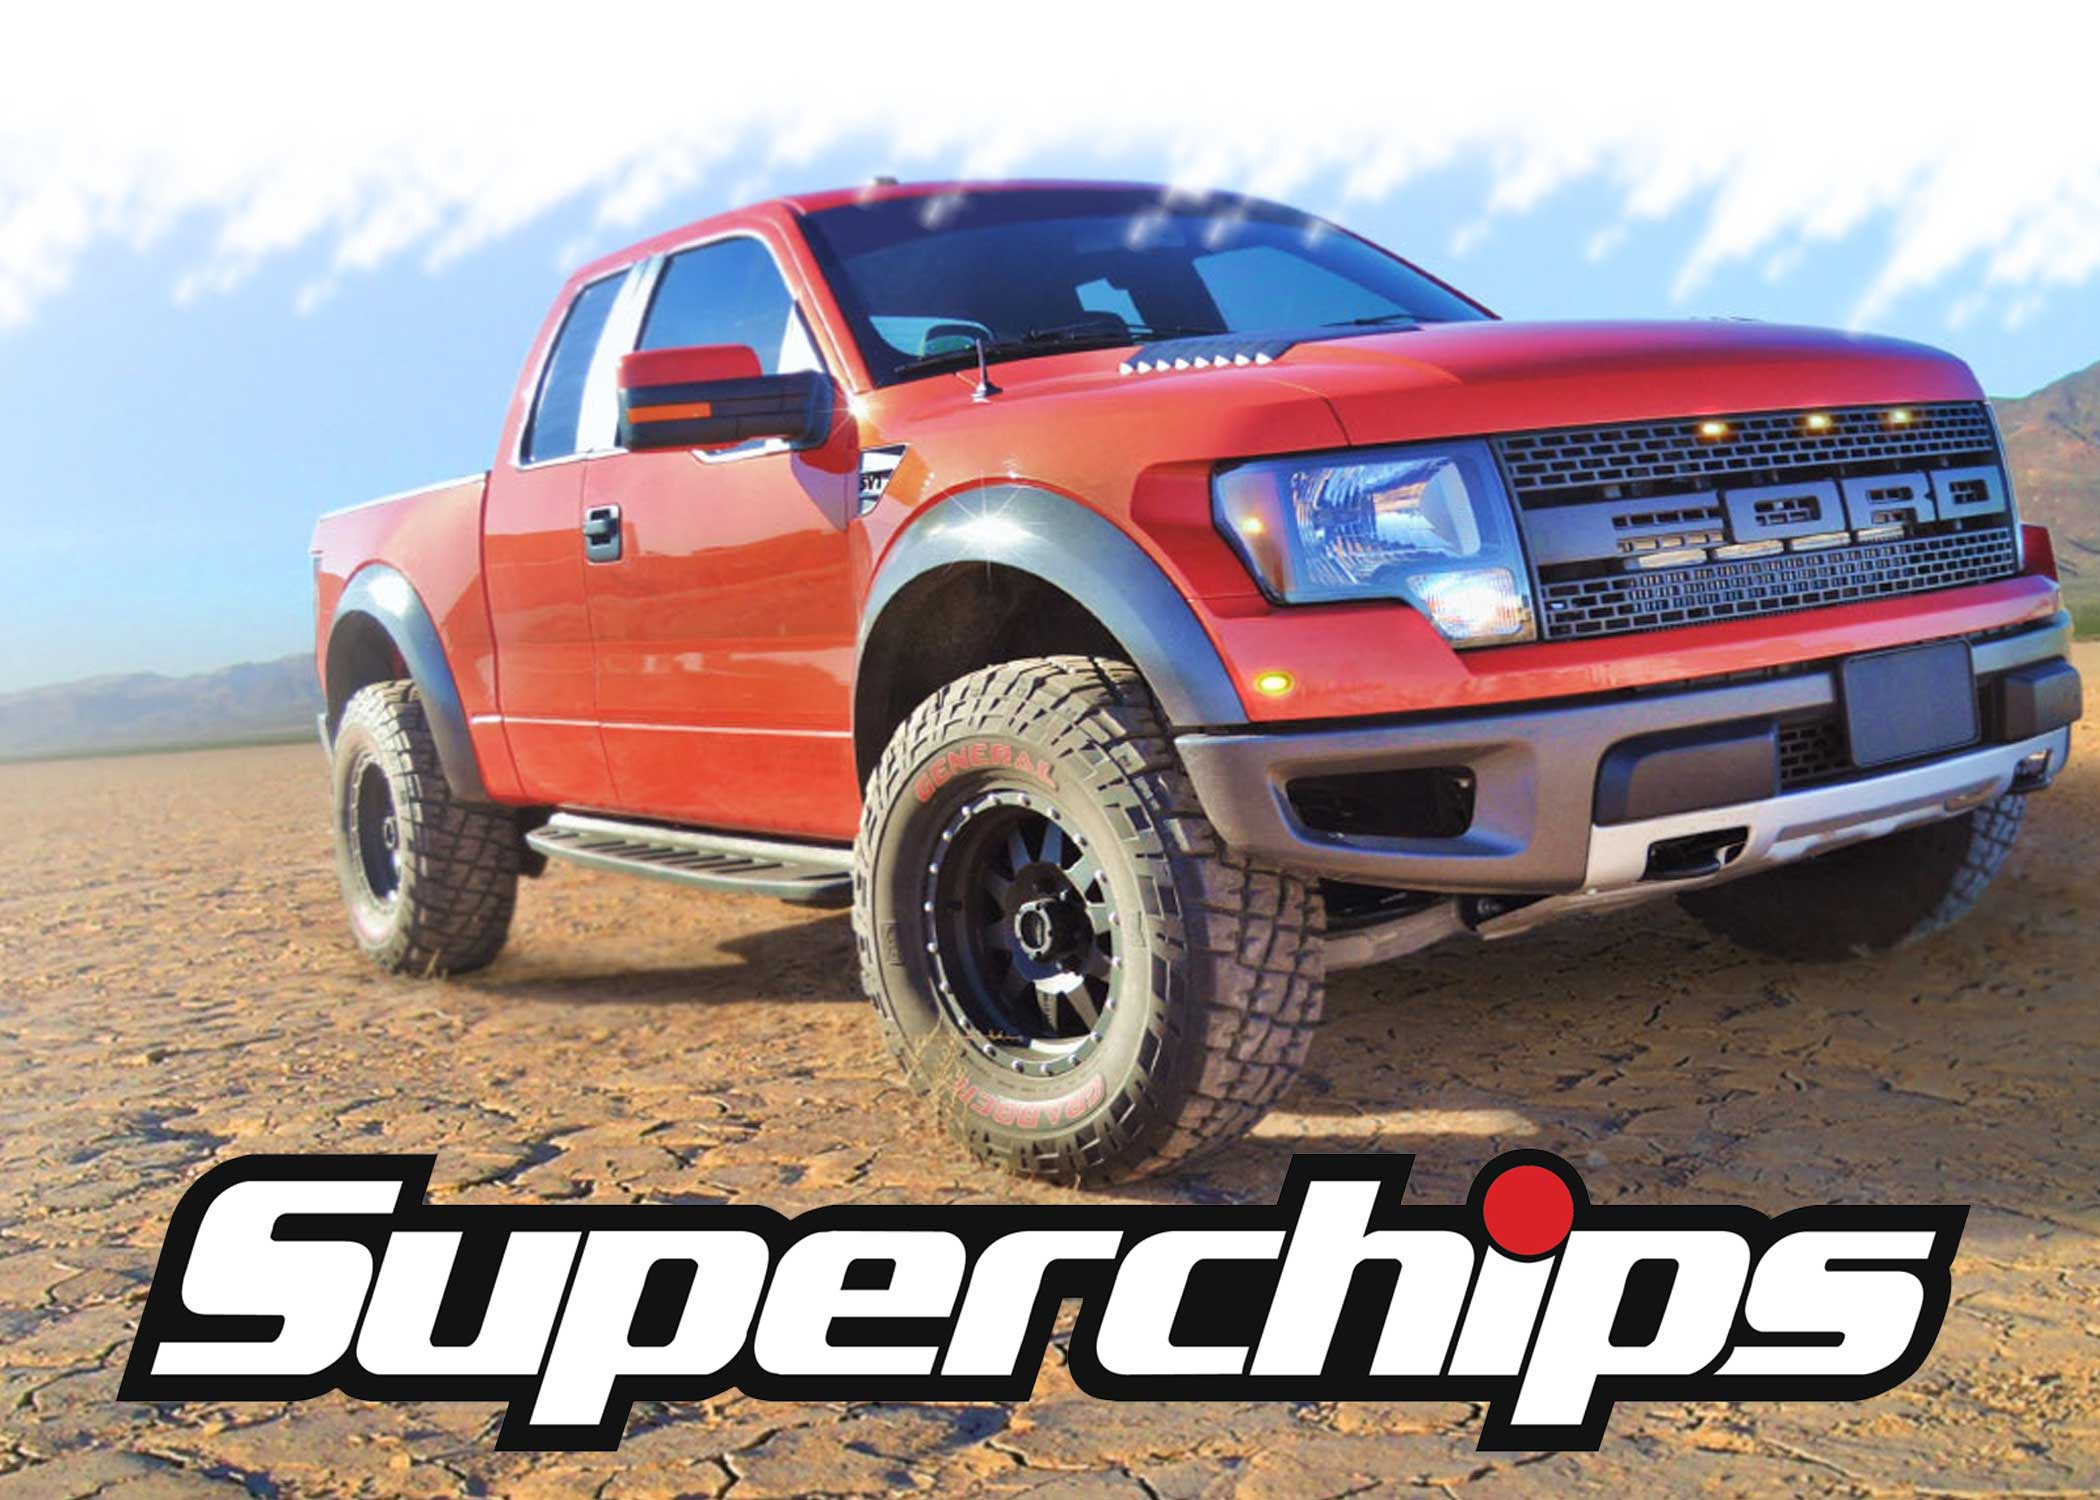 SuperChips Truck and SUV